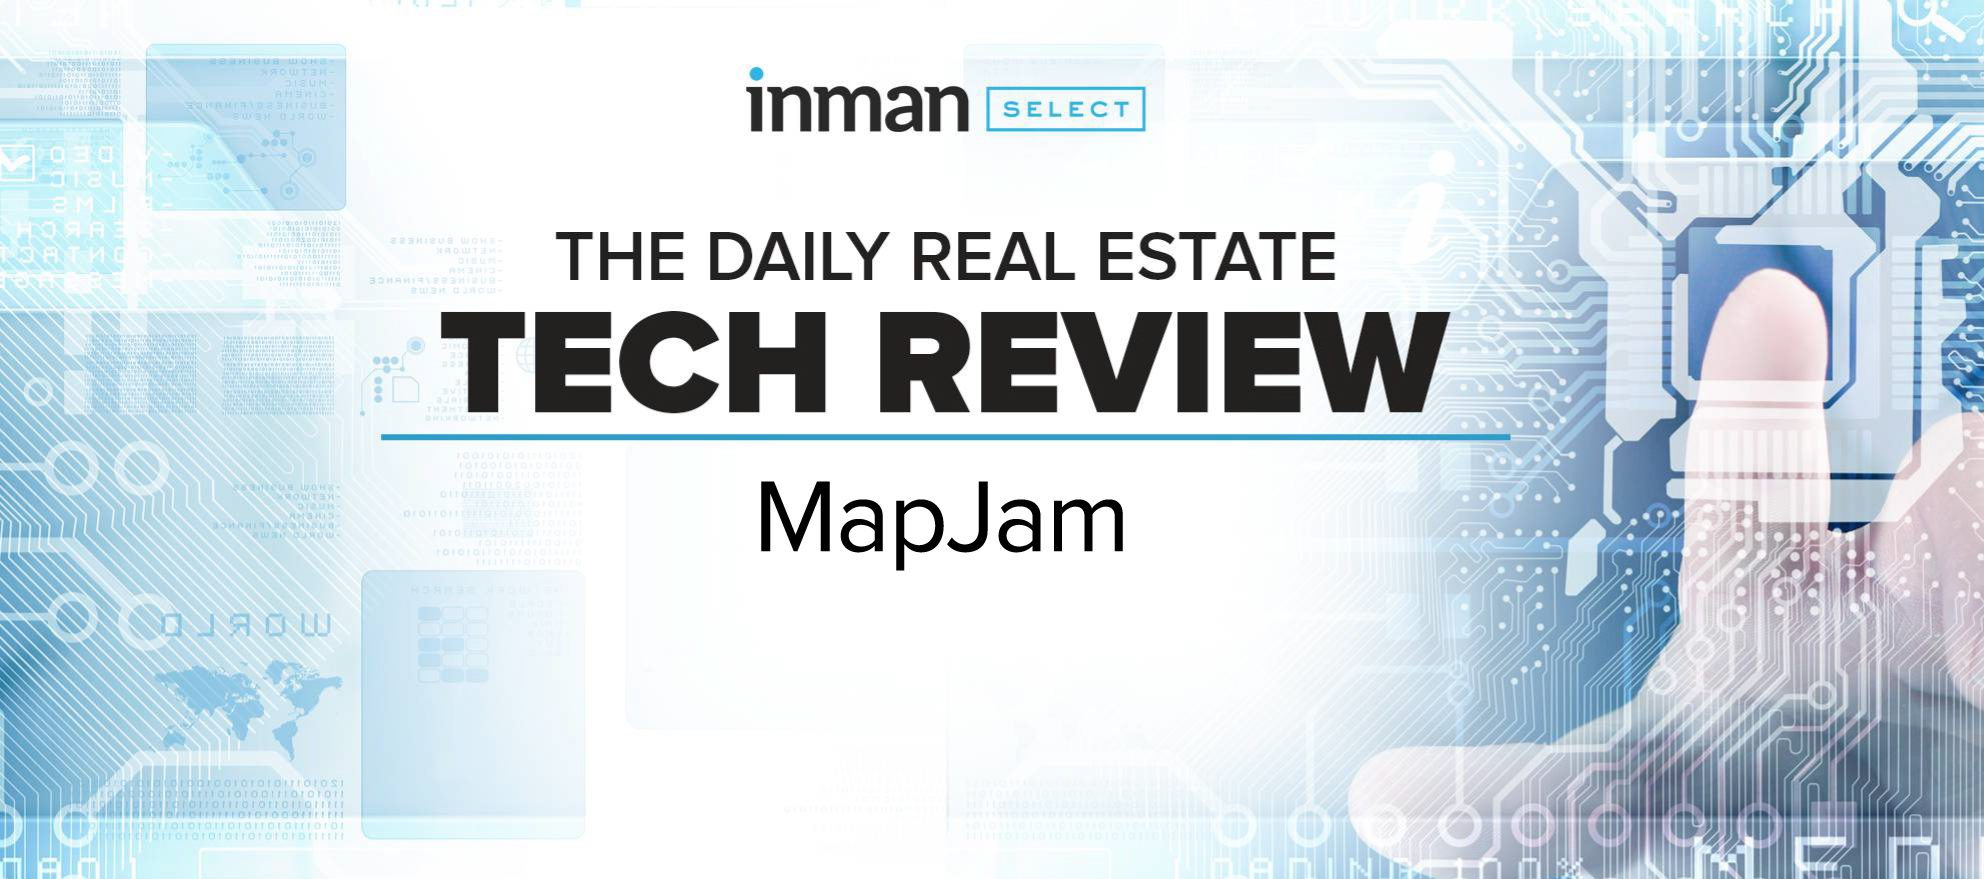 MapJam transforms maps into dynamic marketing tools